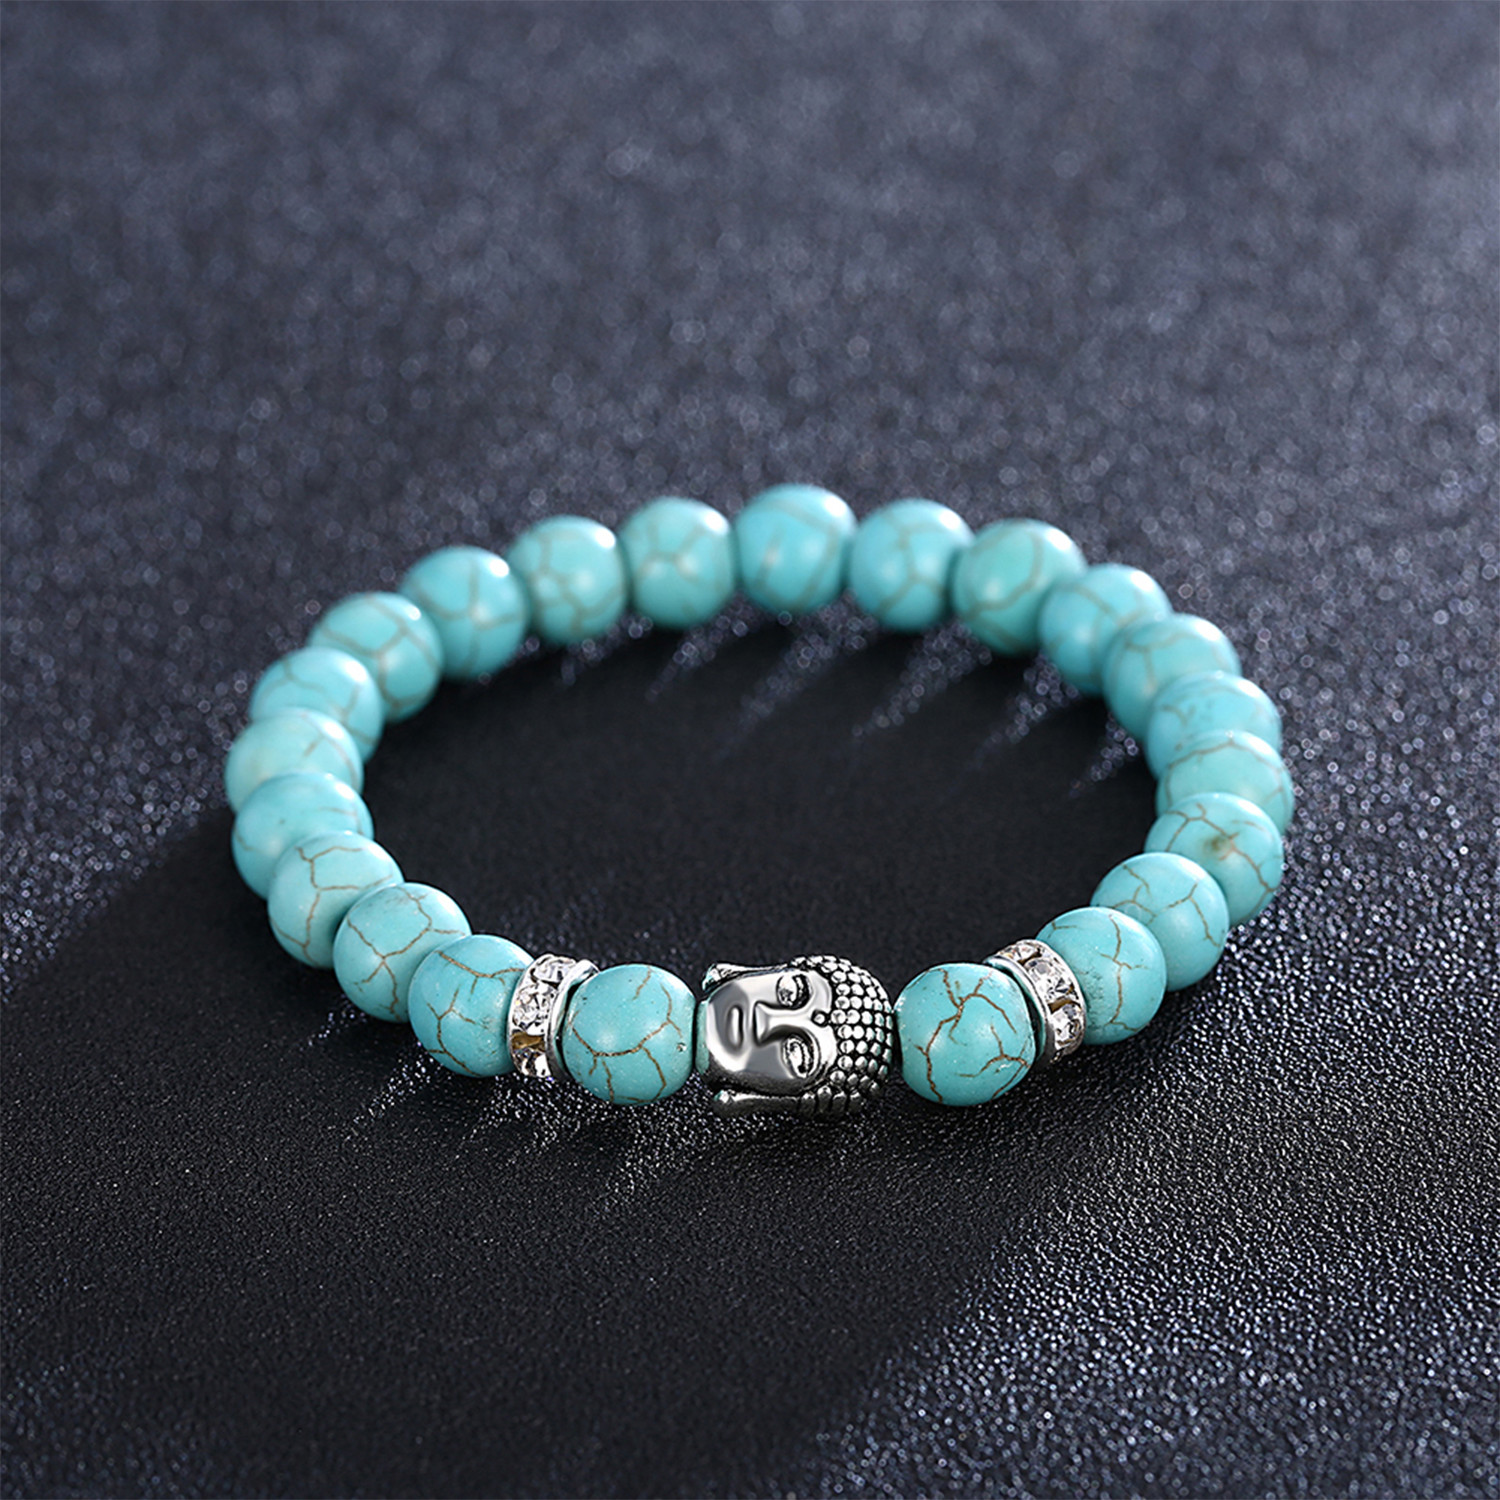 Baby Blue Marble Silver Buddha Chakra Bracelet Rubique Touch Of Modern